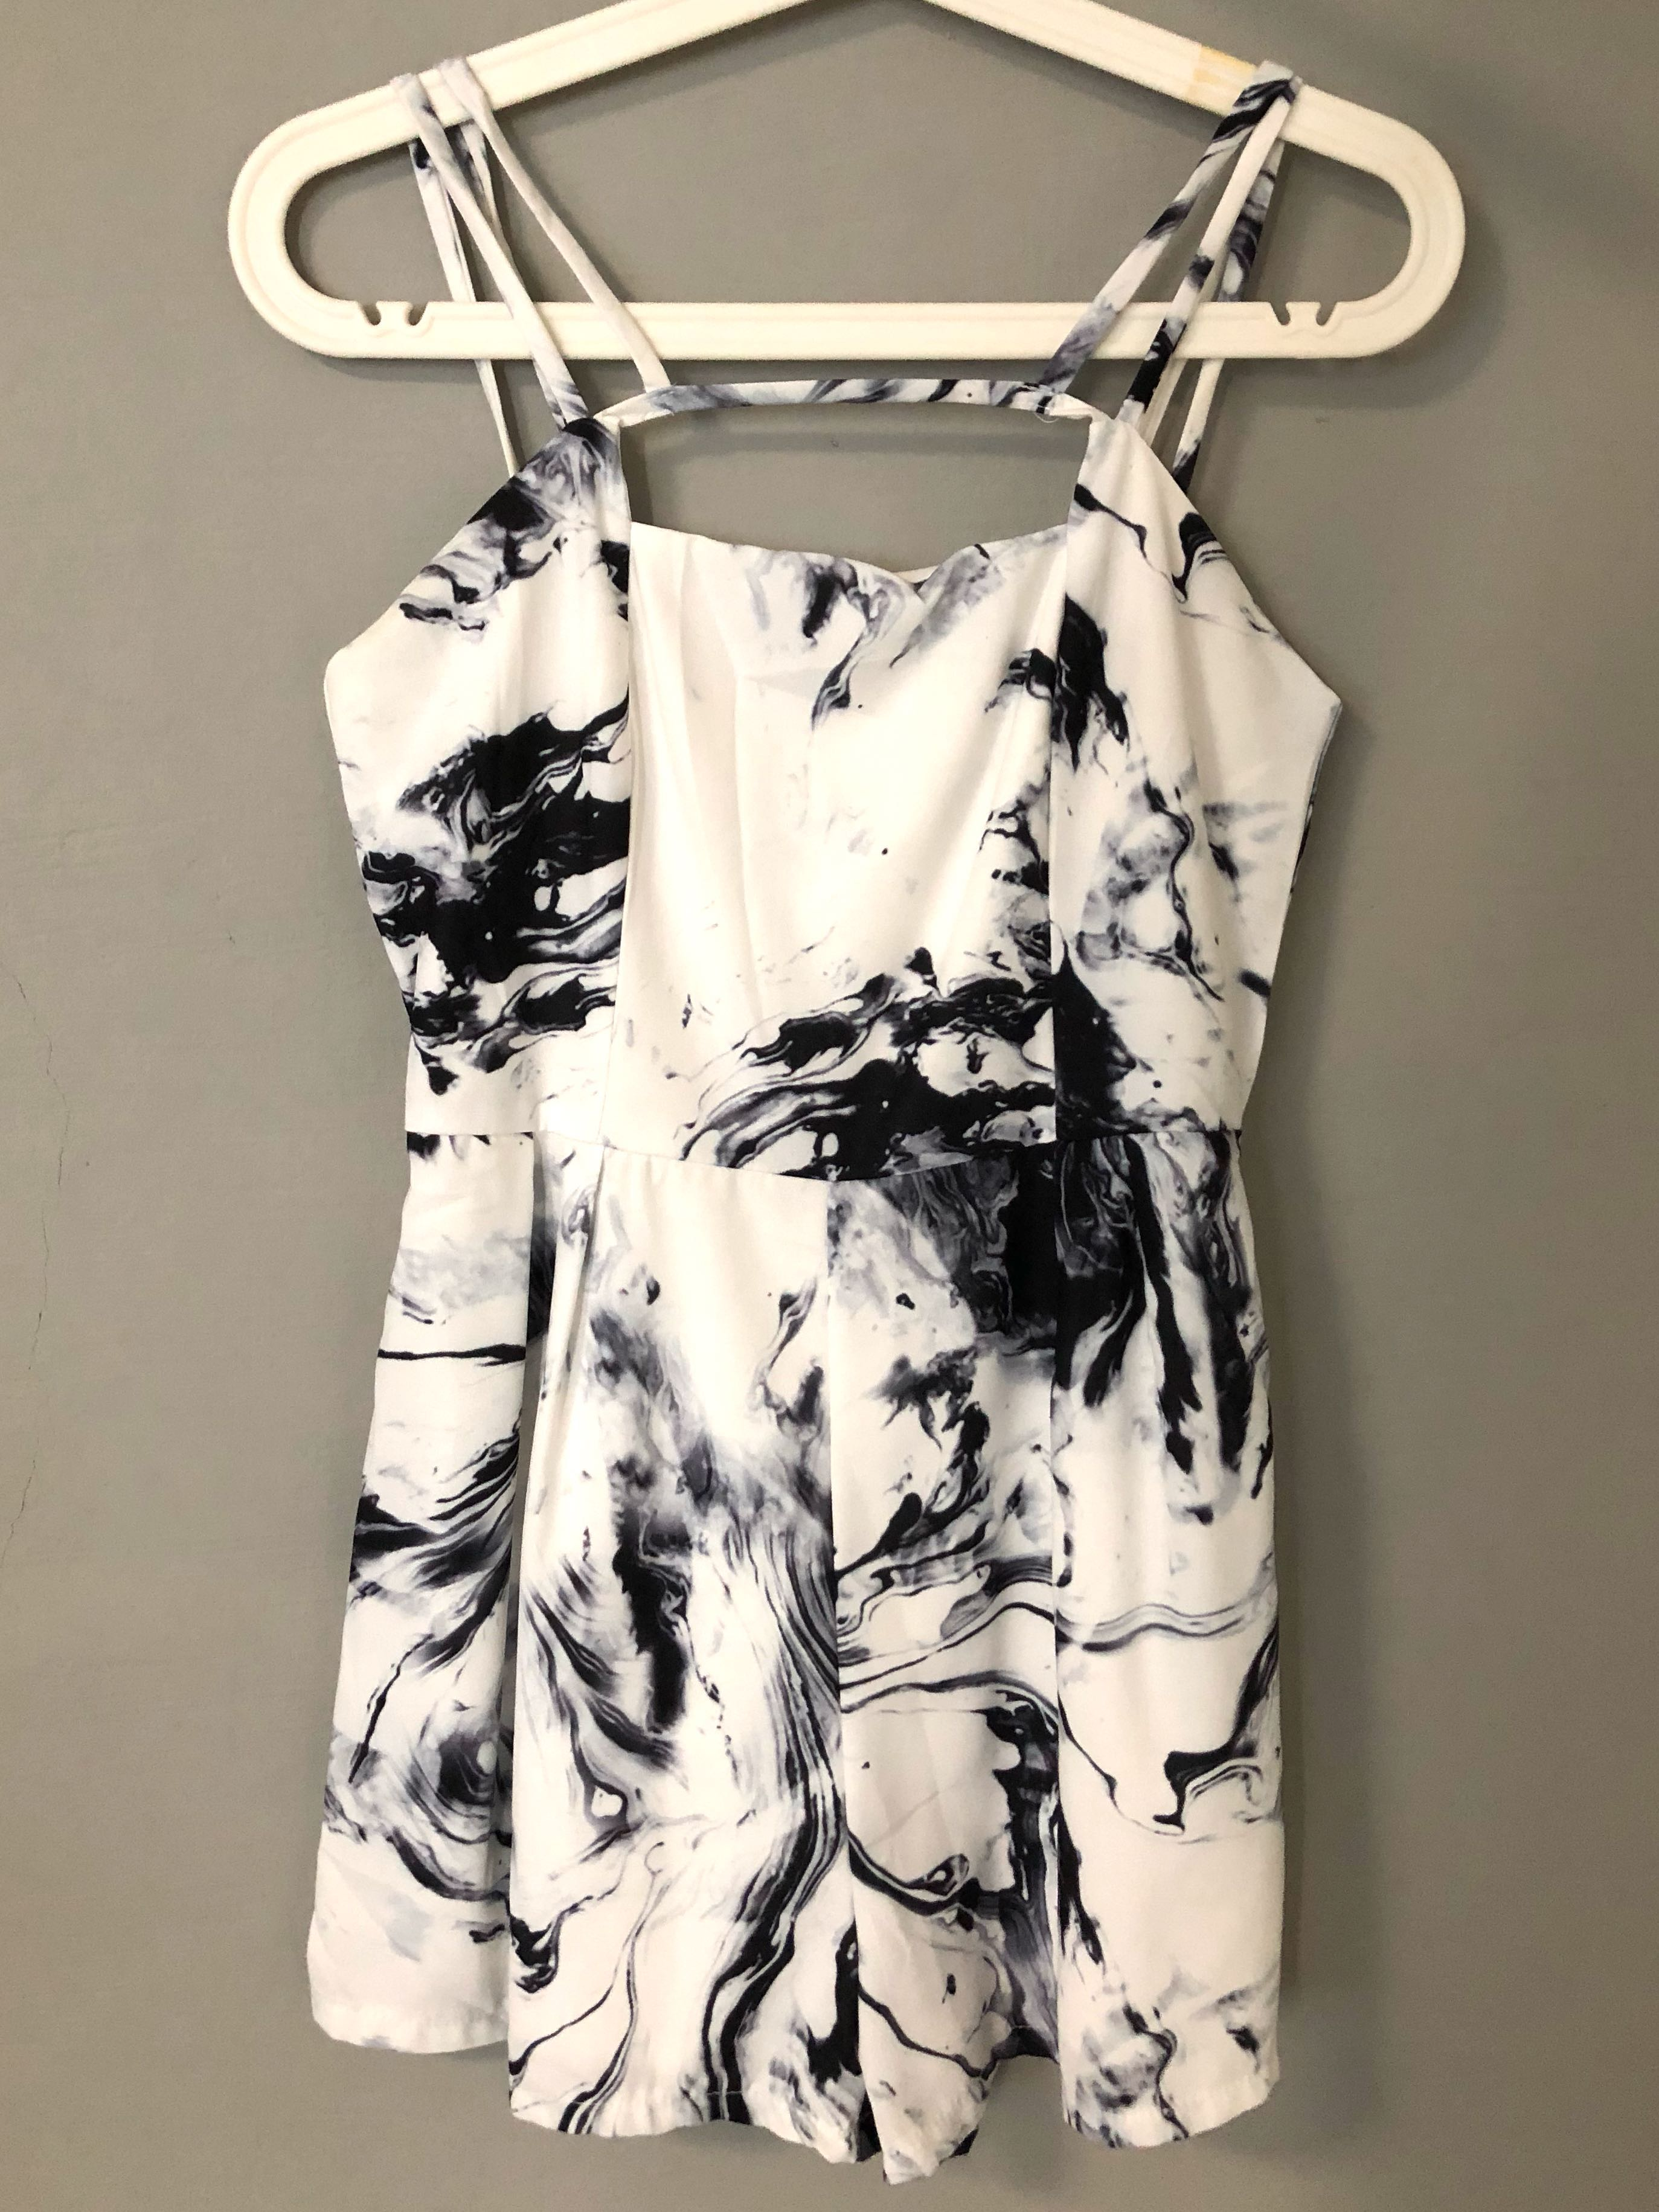 b728800d0097 ZARA Basic Marble Strap Romper, Women's Fashion, Clothes, Rompers ...